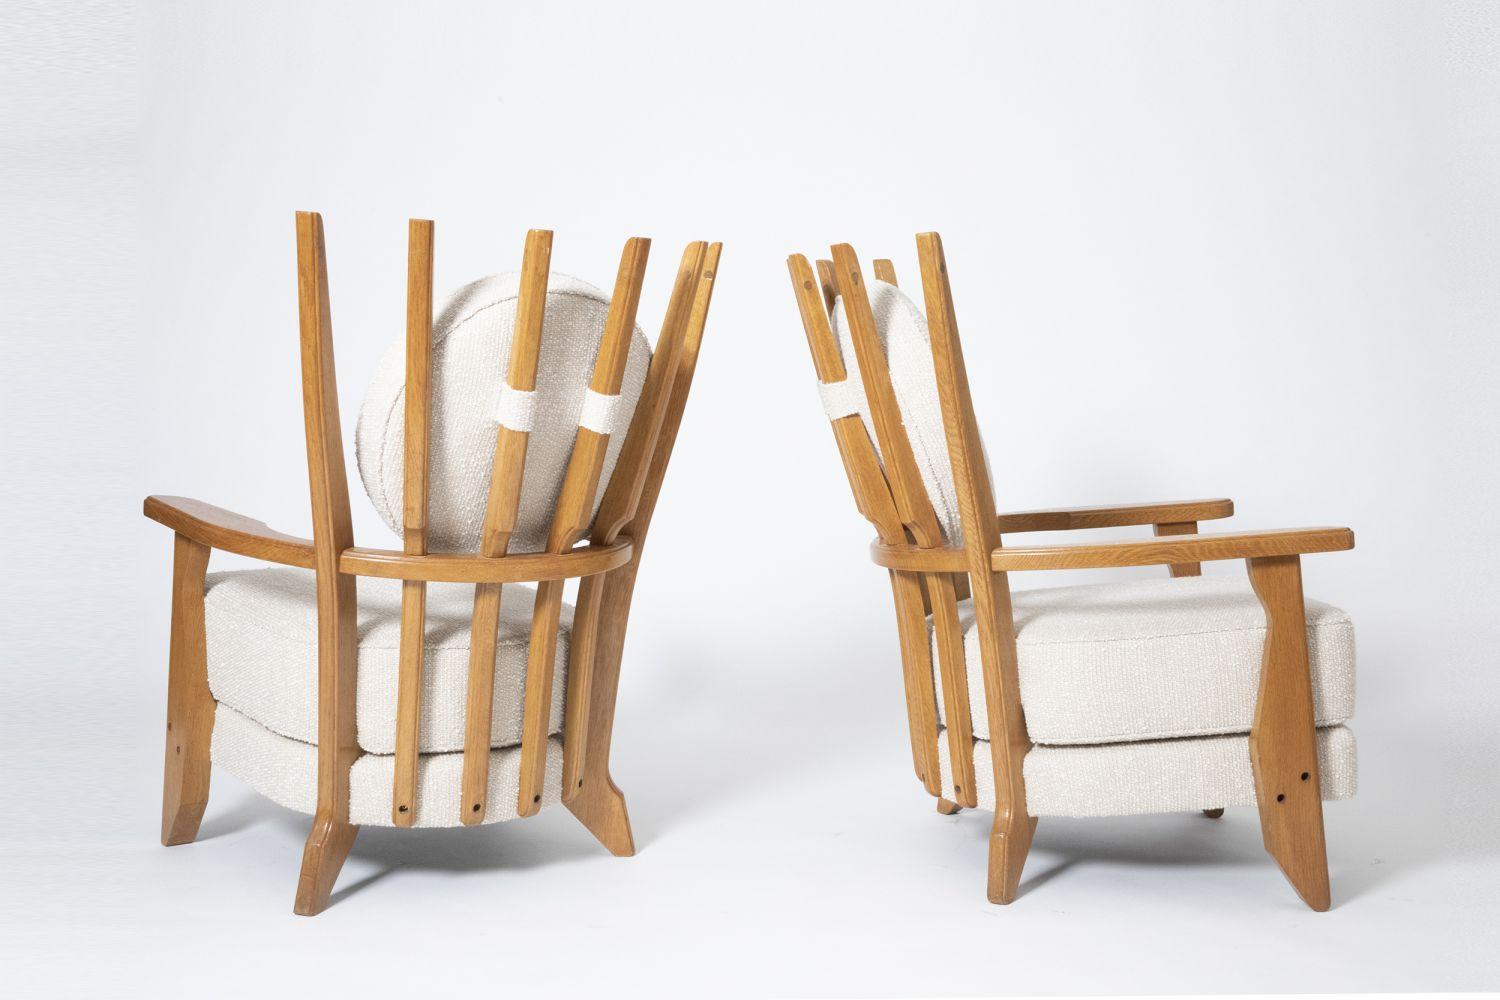 """Guillerme et Chambron's Pair of """"Tapissier"""" armchairs, full diagonal back view and side view of both armchairs"""